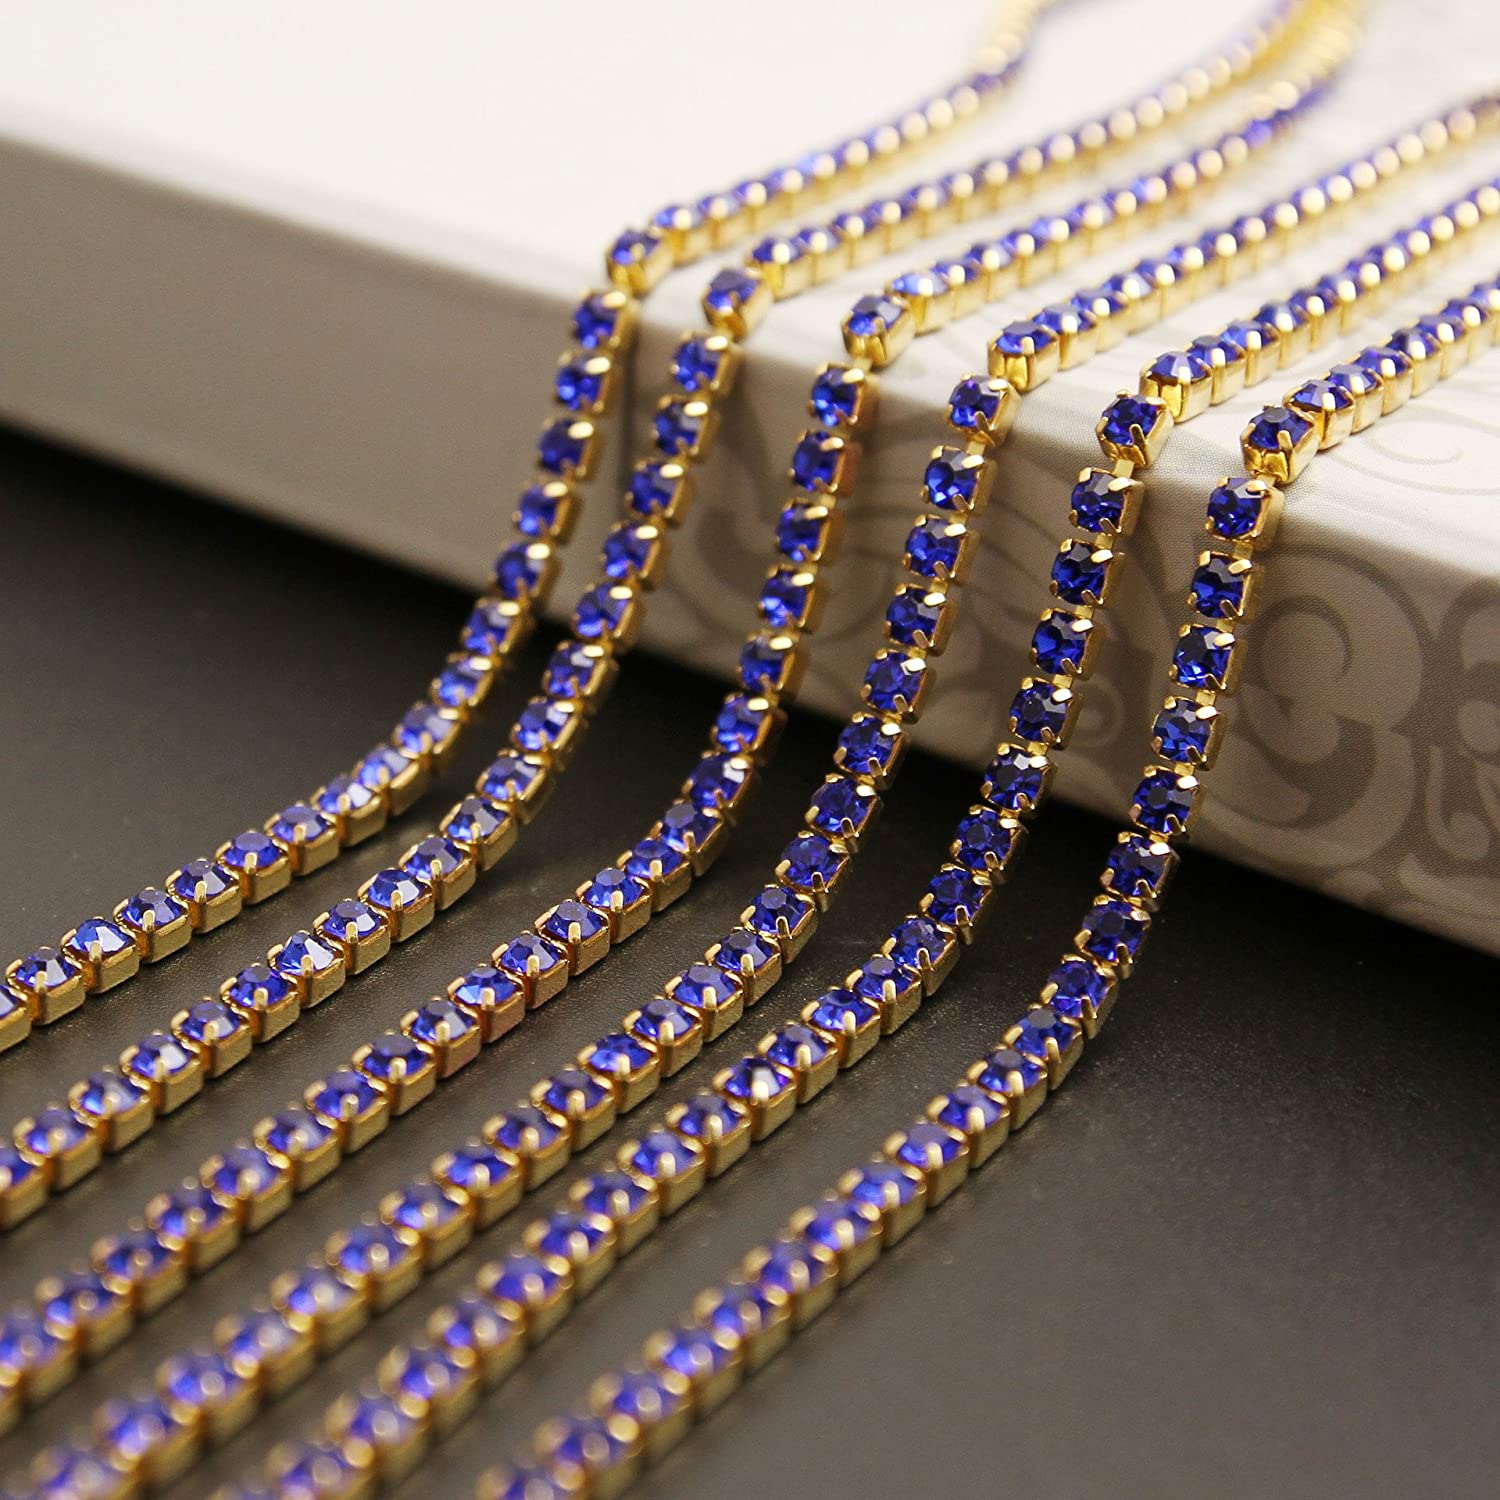 USIX 10 Yards Crystal Rhinestone Close Chain Trimming Claw Chain Multi Size Color Rhinestone Chain for DIY Arts Craft Sewing Jewelry Making SS6//2.0MM Purple-Gold Chain